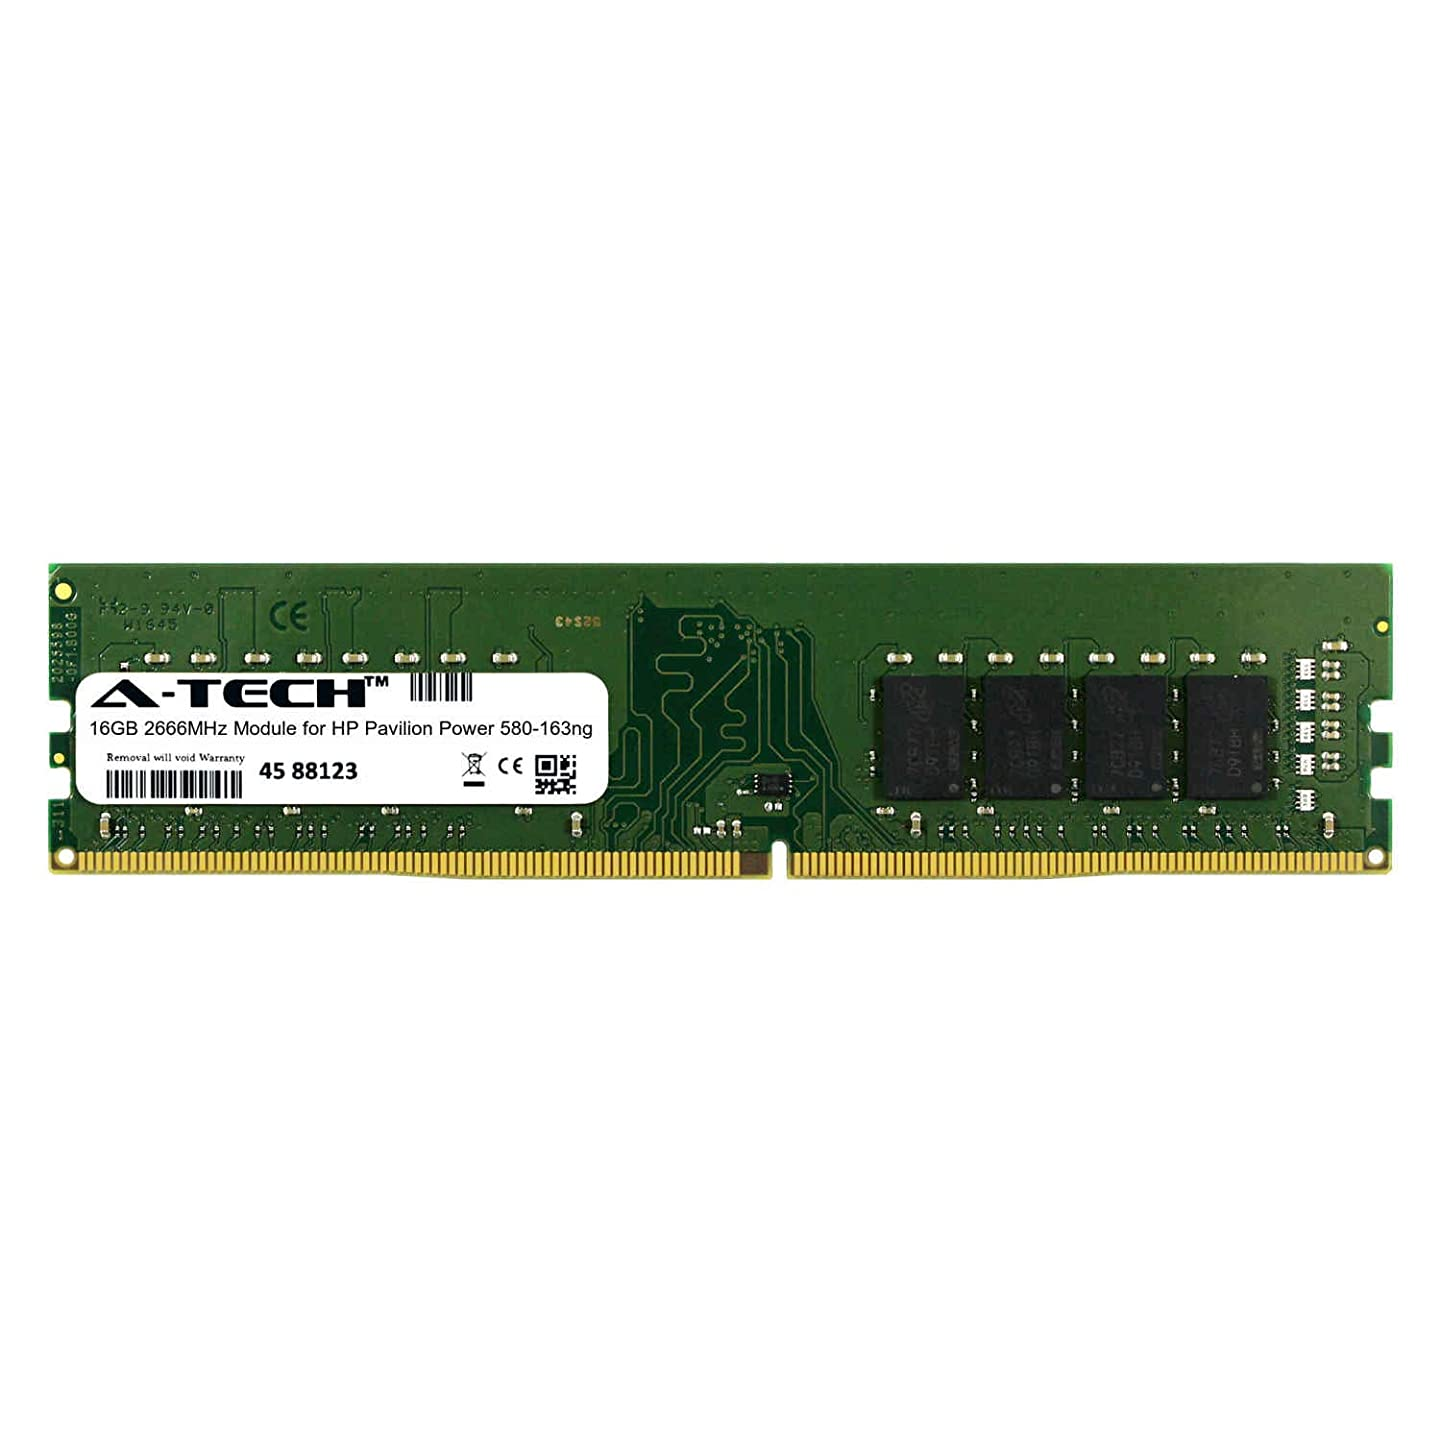 A-Tech 16GB Module for HP Pavilion Power 580-163ng Desktop & Workstation Motherboard Compatible DDR4 2666Mhz Memory Ram (ATMS312348A25823X1)